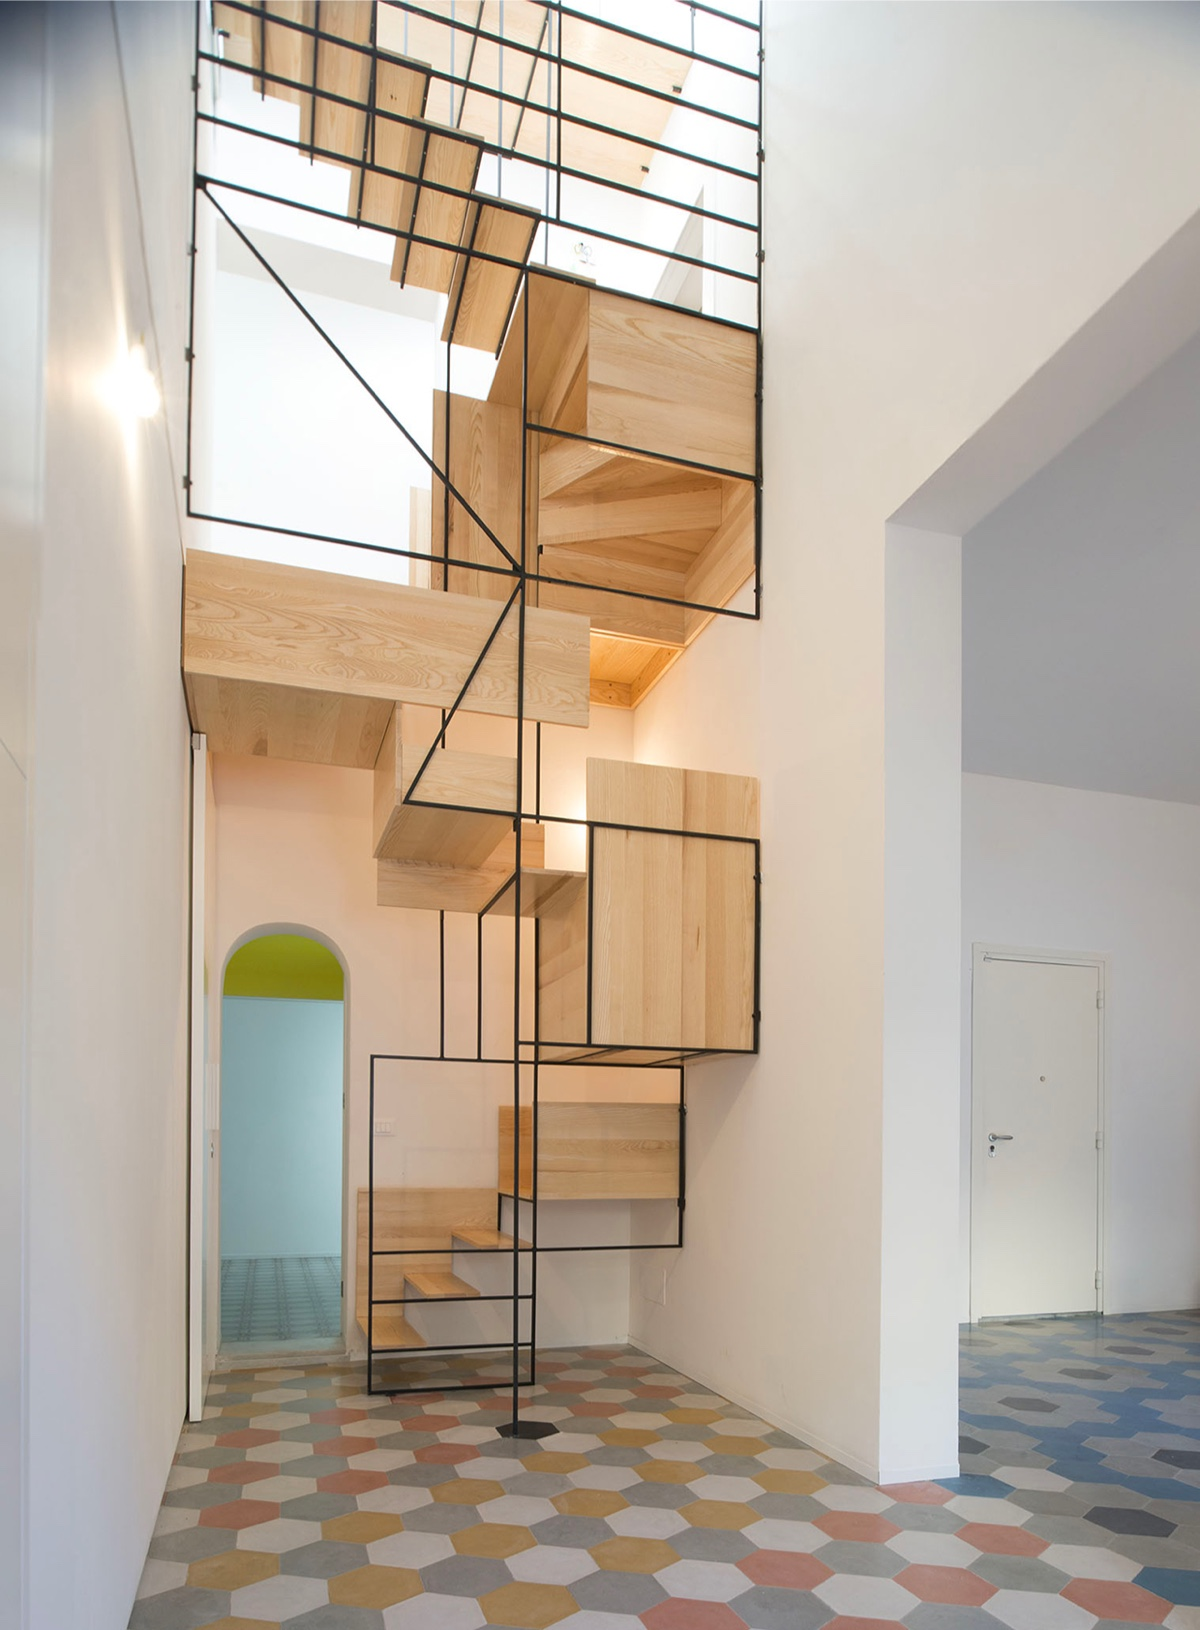 Staircases In Homes 25 Unique Staircase Designs To Take Center Stage In Your Home